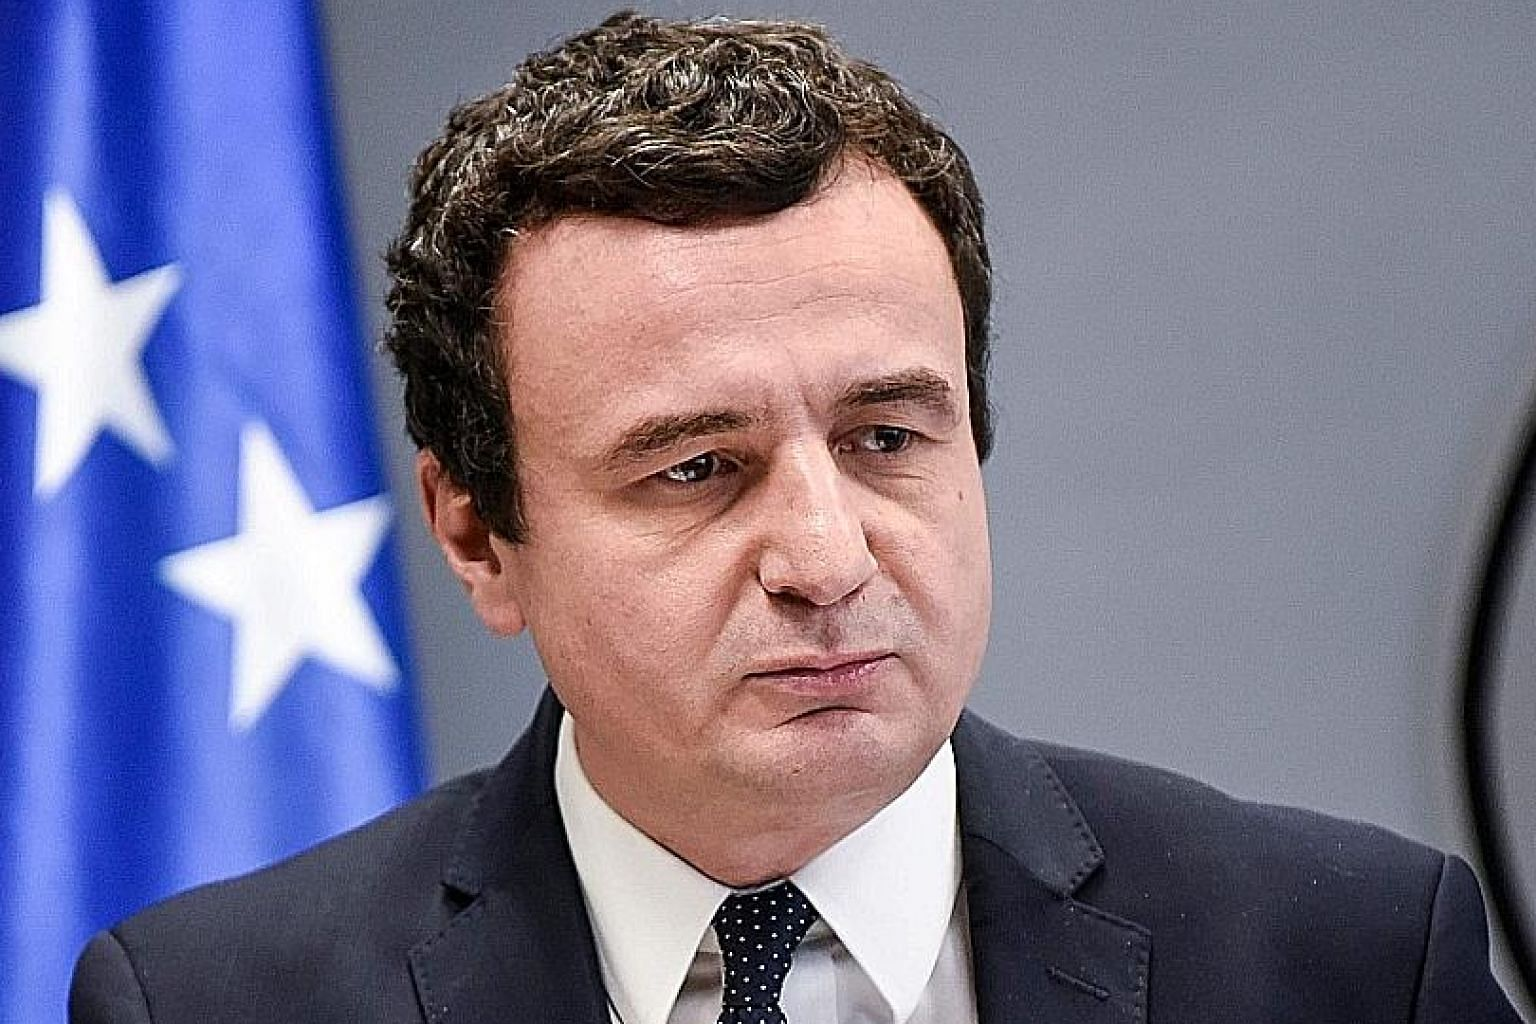 Mr Albin Kurti will remain as Kosovo's caretaker Prime Minister until a new government is formed.